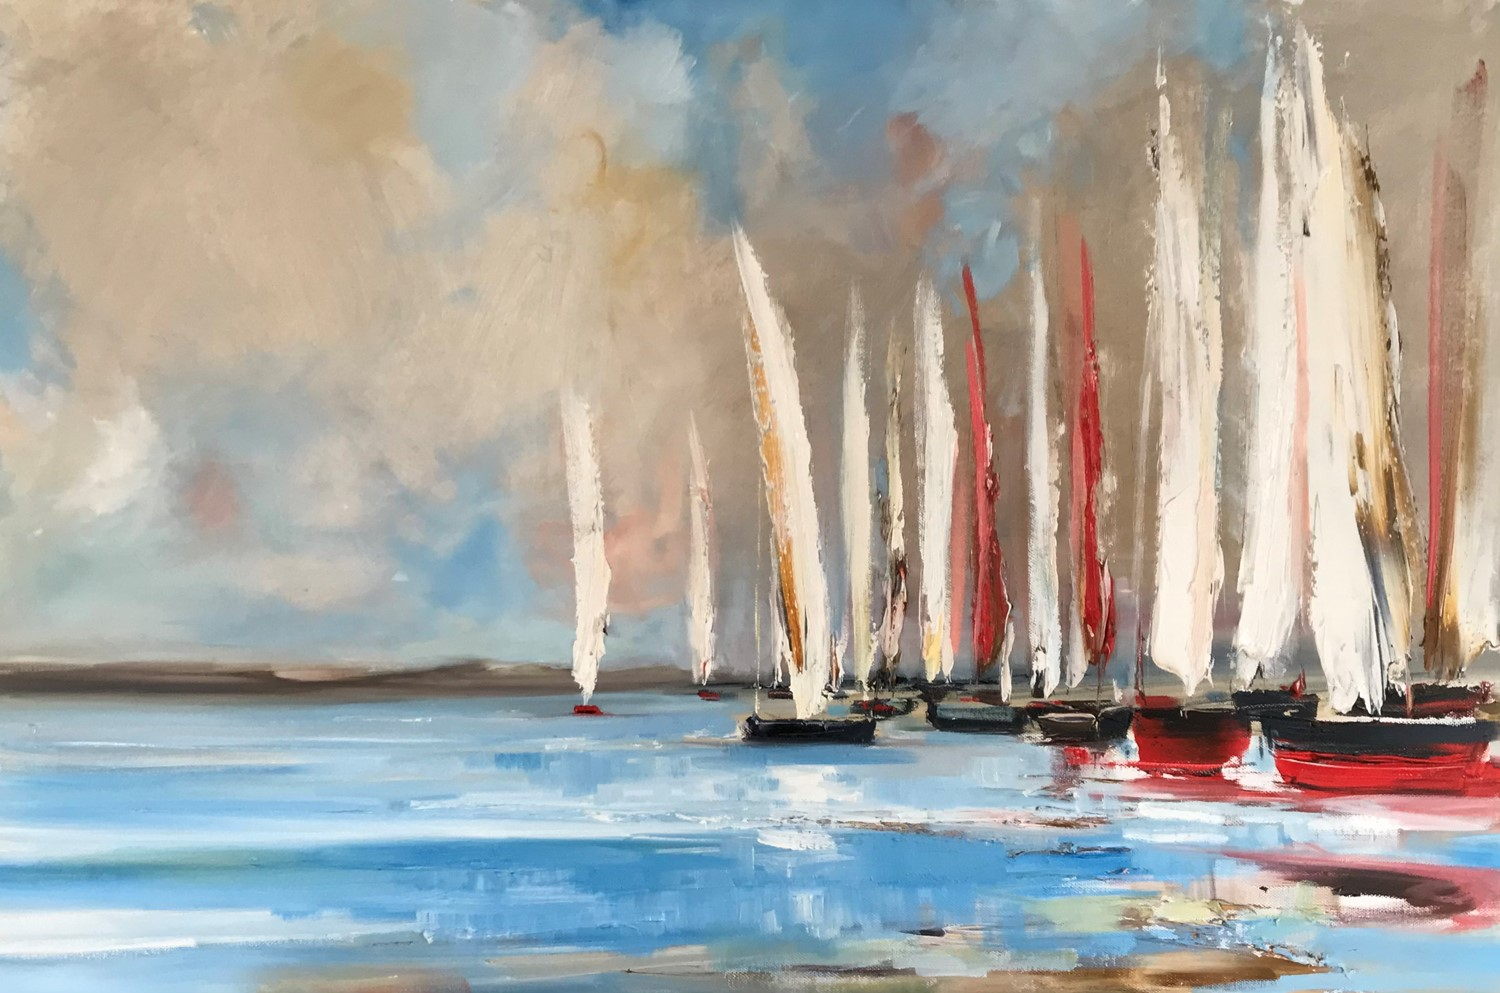 'Busy with sails ' by artist Rosanne Barr